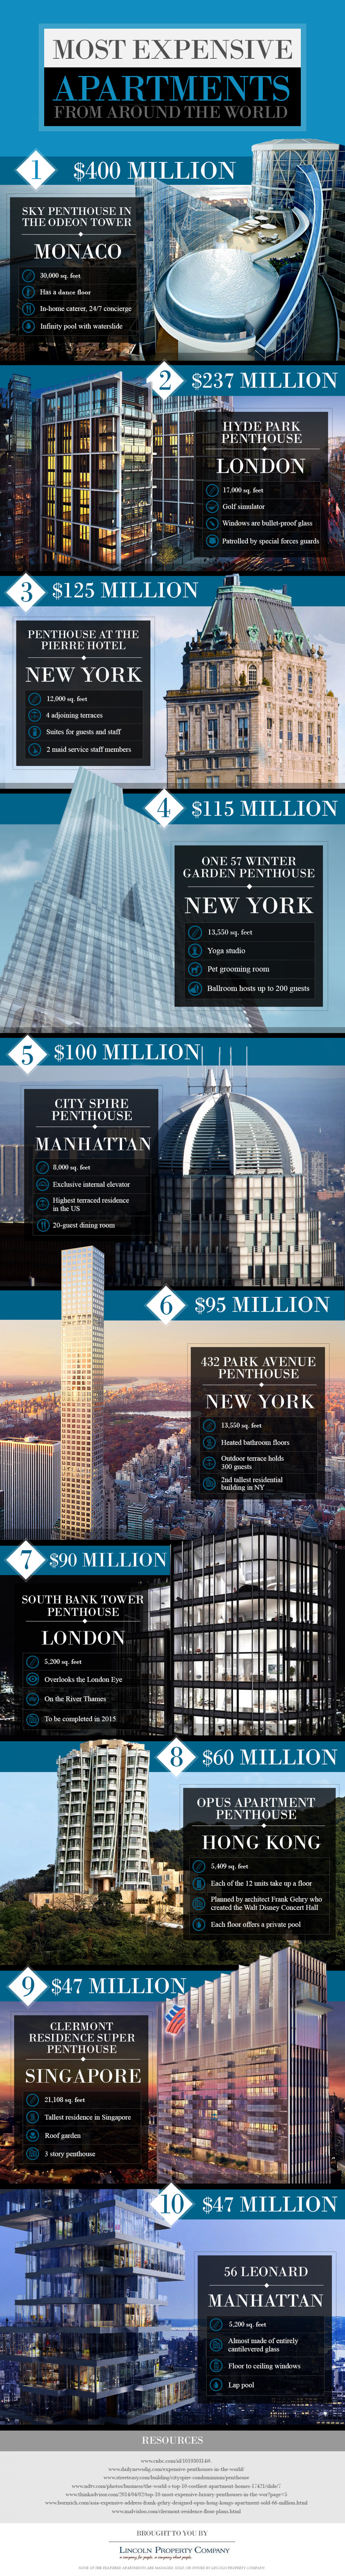 Top 10 Most Expensive Apartments Around the World Infographic